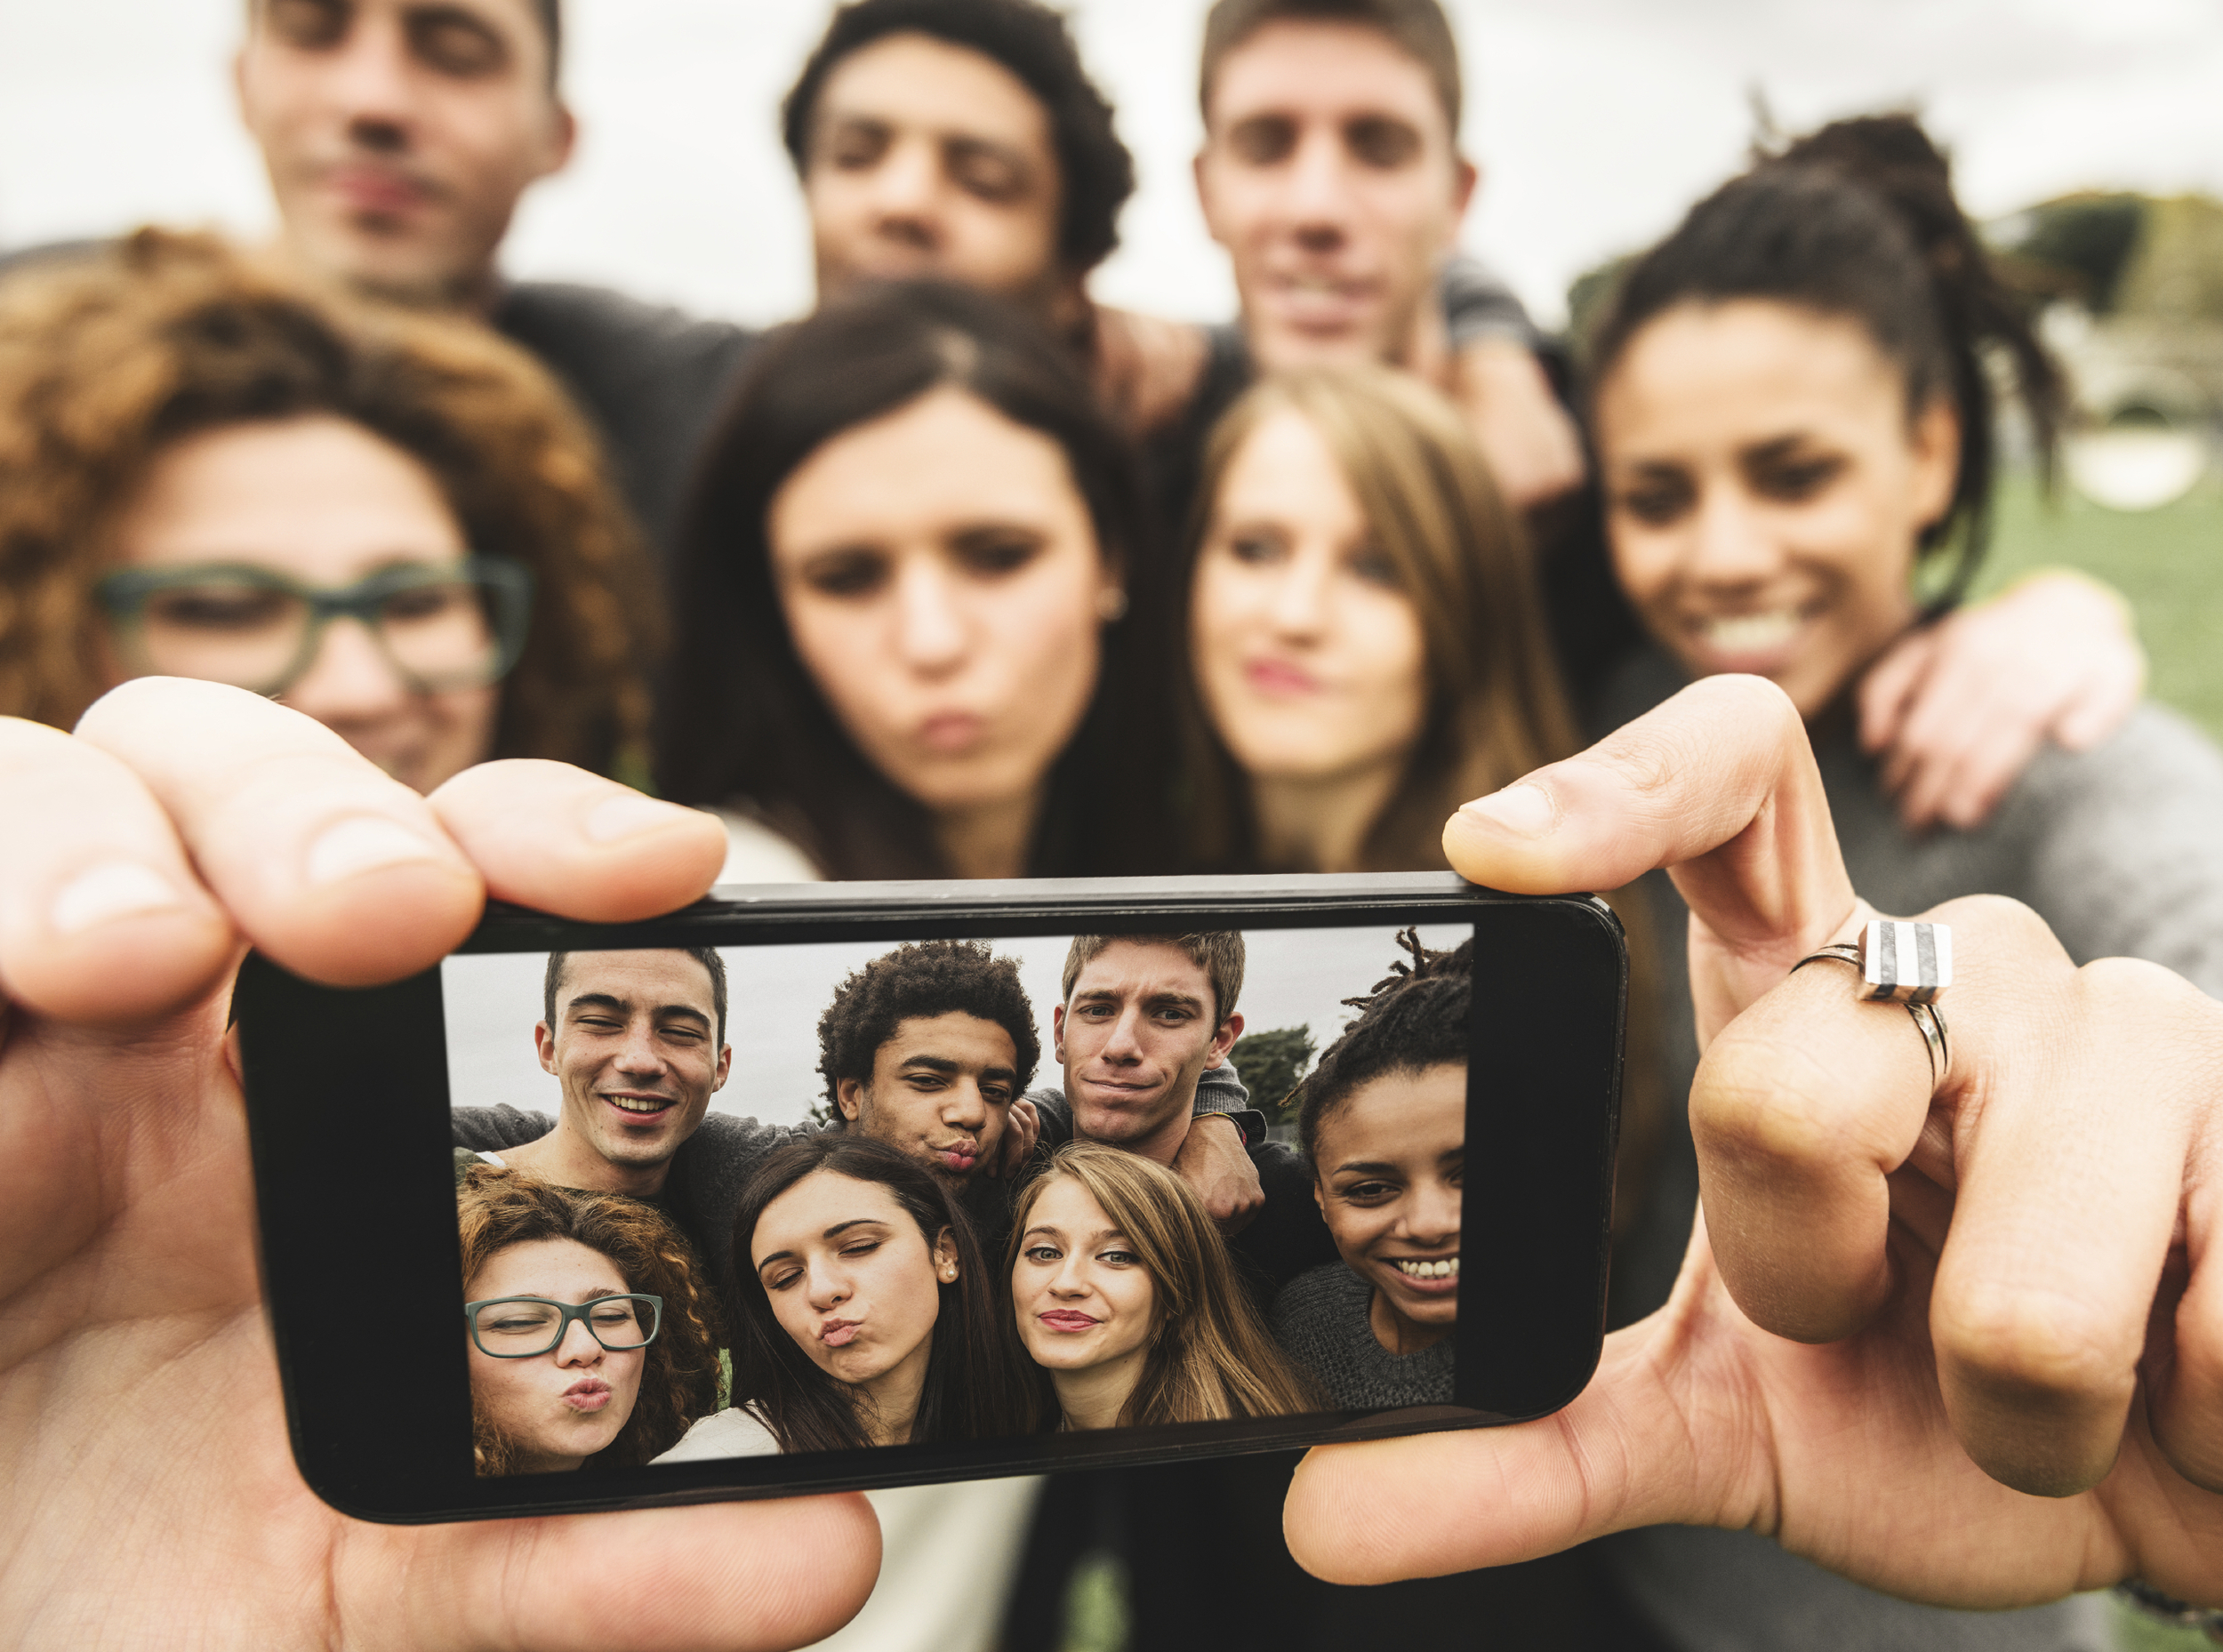 Millennials have been described as self-absorbed and selfish.Credit: Globalprtrends.com